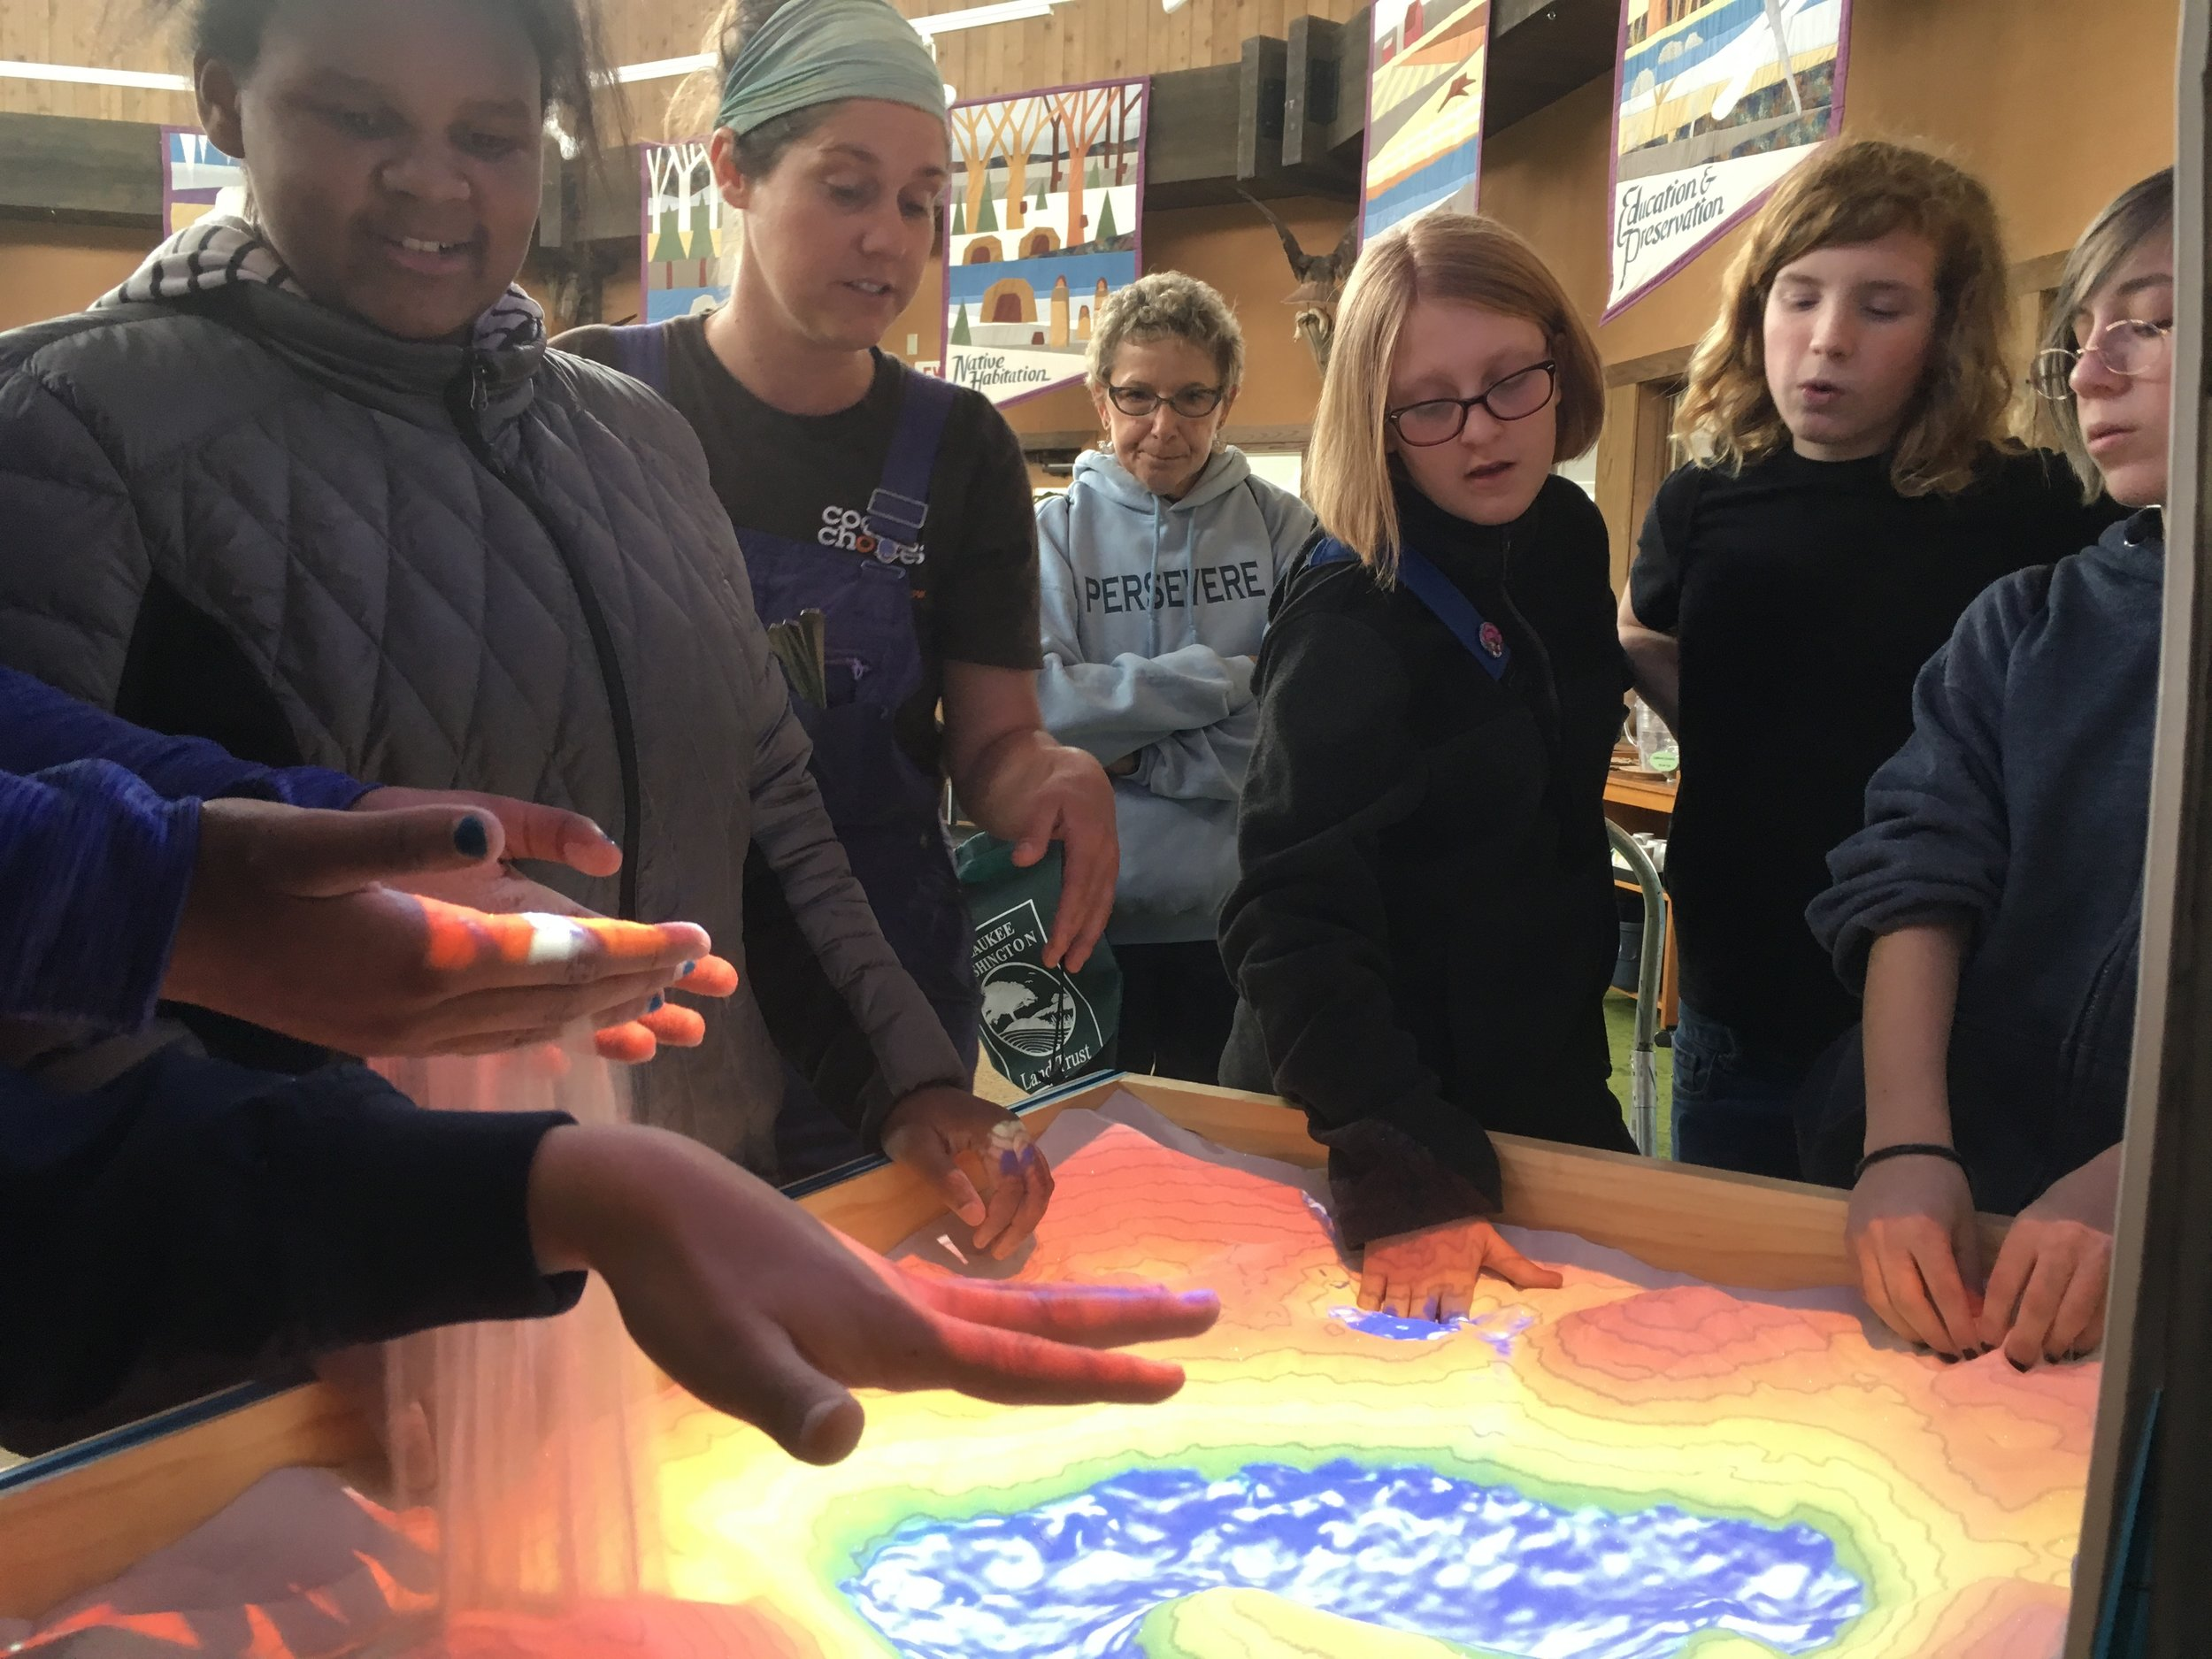 Riveredge's talented educators made linkages between not only physical dynamics shown through the table but also human dynamics like Foxconn's application for water and the Great Lakes Compact.